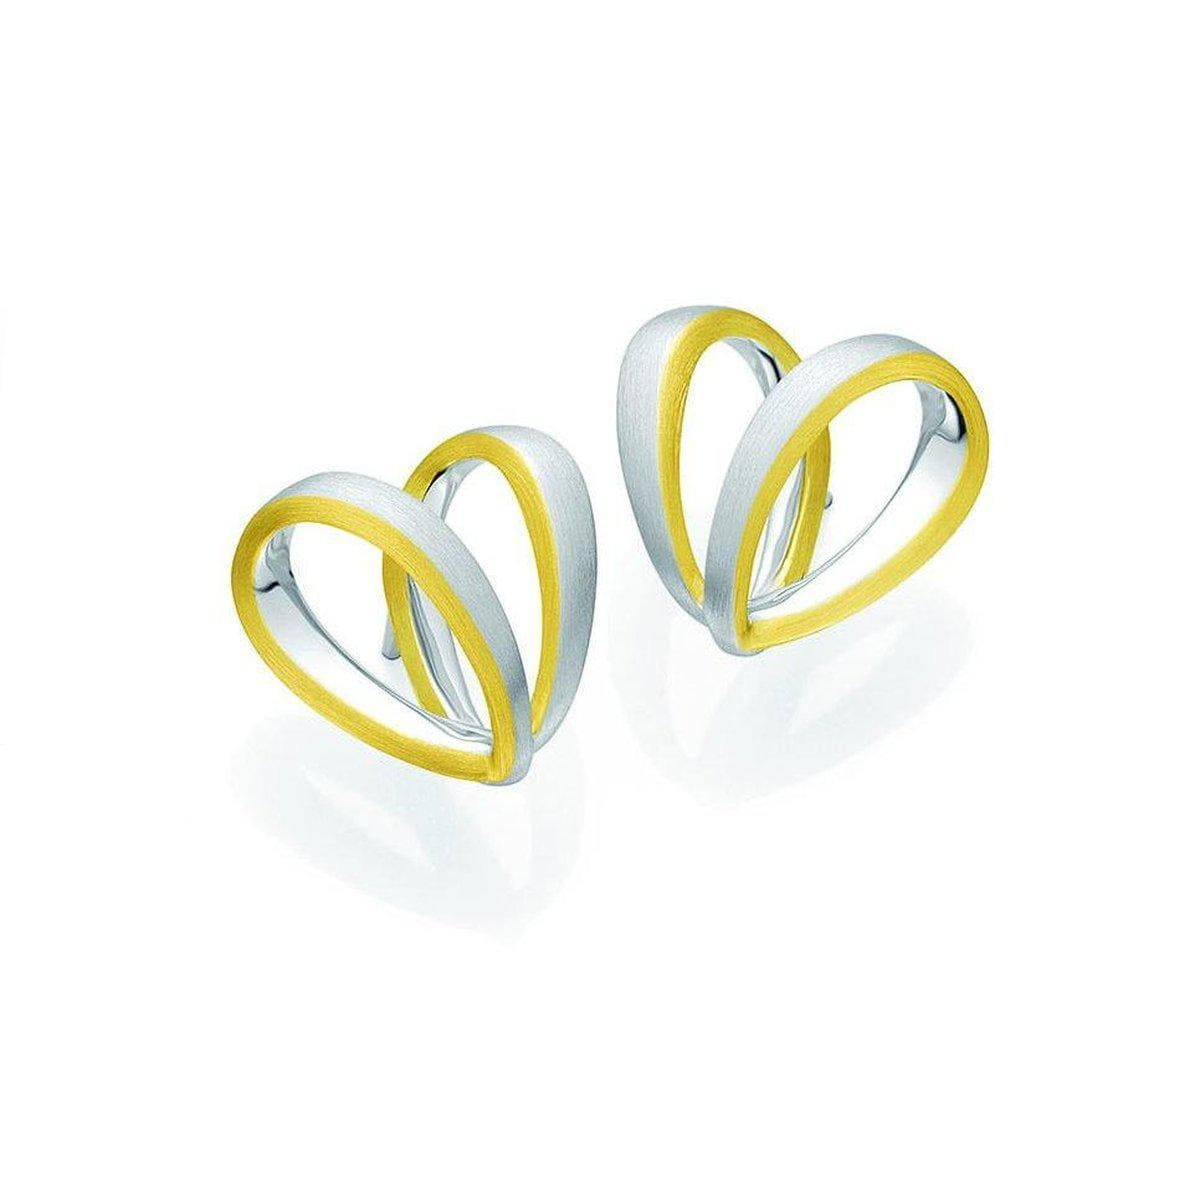 Yellow Gold & Rhodium Plated Sterling Silver Earrings - 04/03762-Breuning-Renee Taylor Gallery